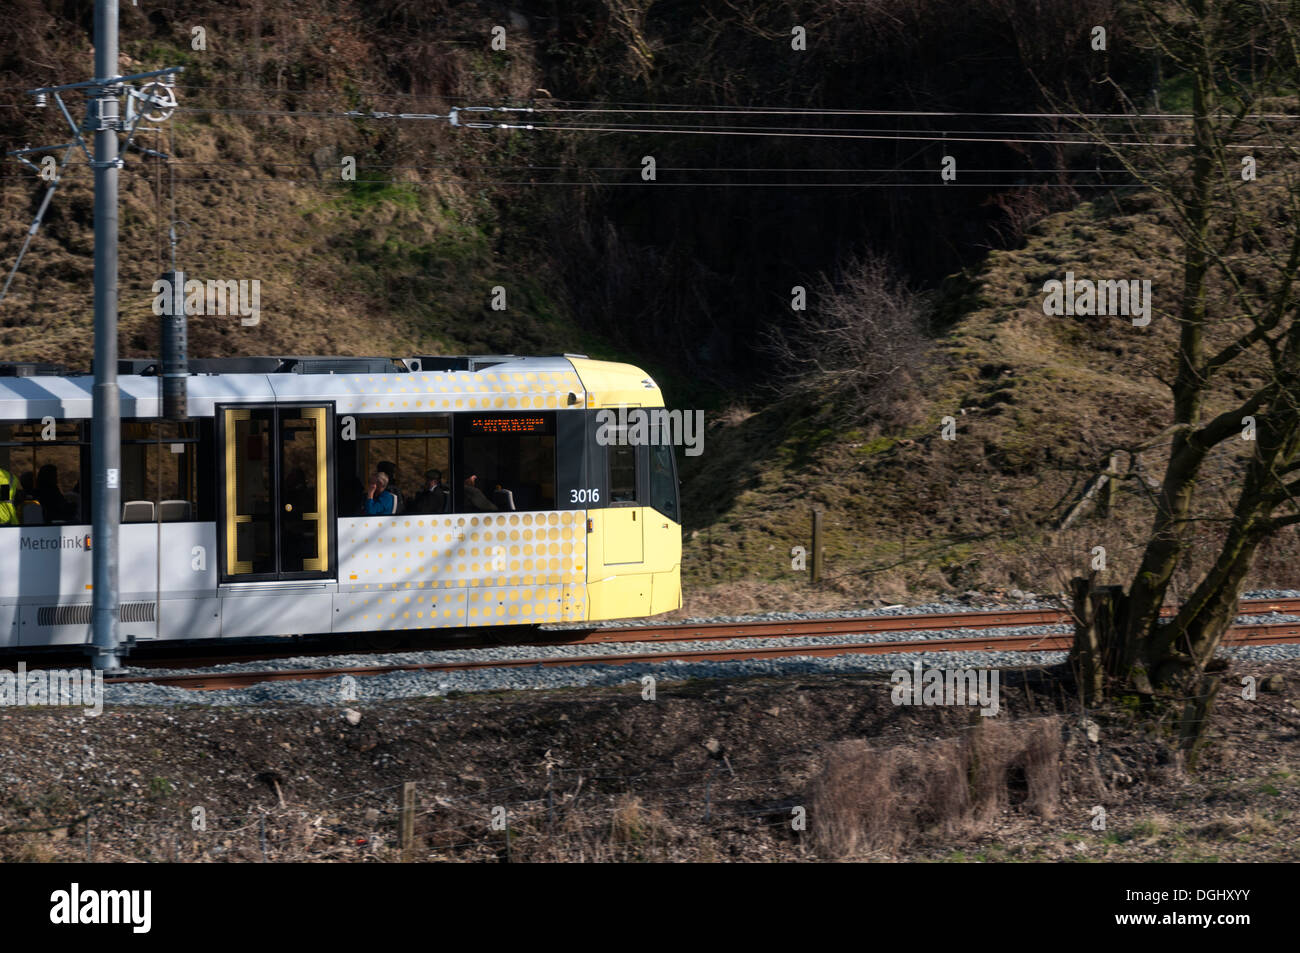 Metrolink tram in the river Beal valley, on the Oldham-Rochdale line, near Newhey, Rochdale, Manchester, England, UK. - Stock Image